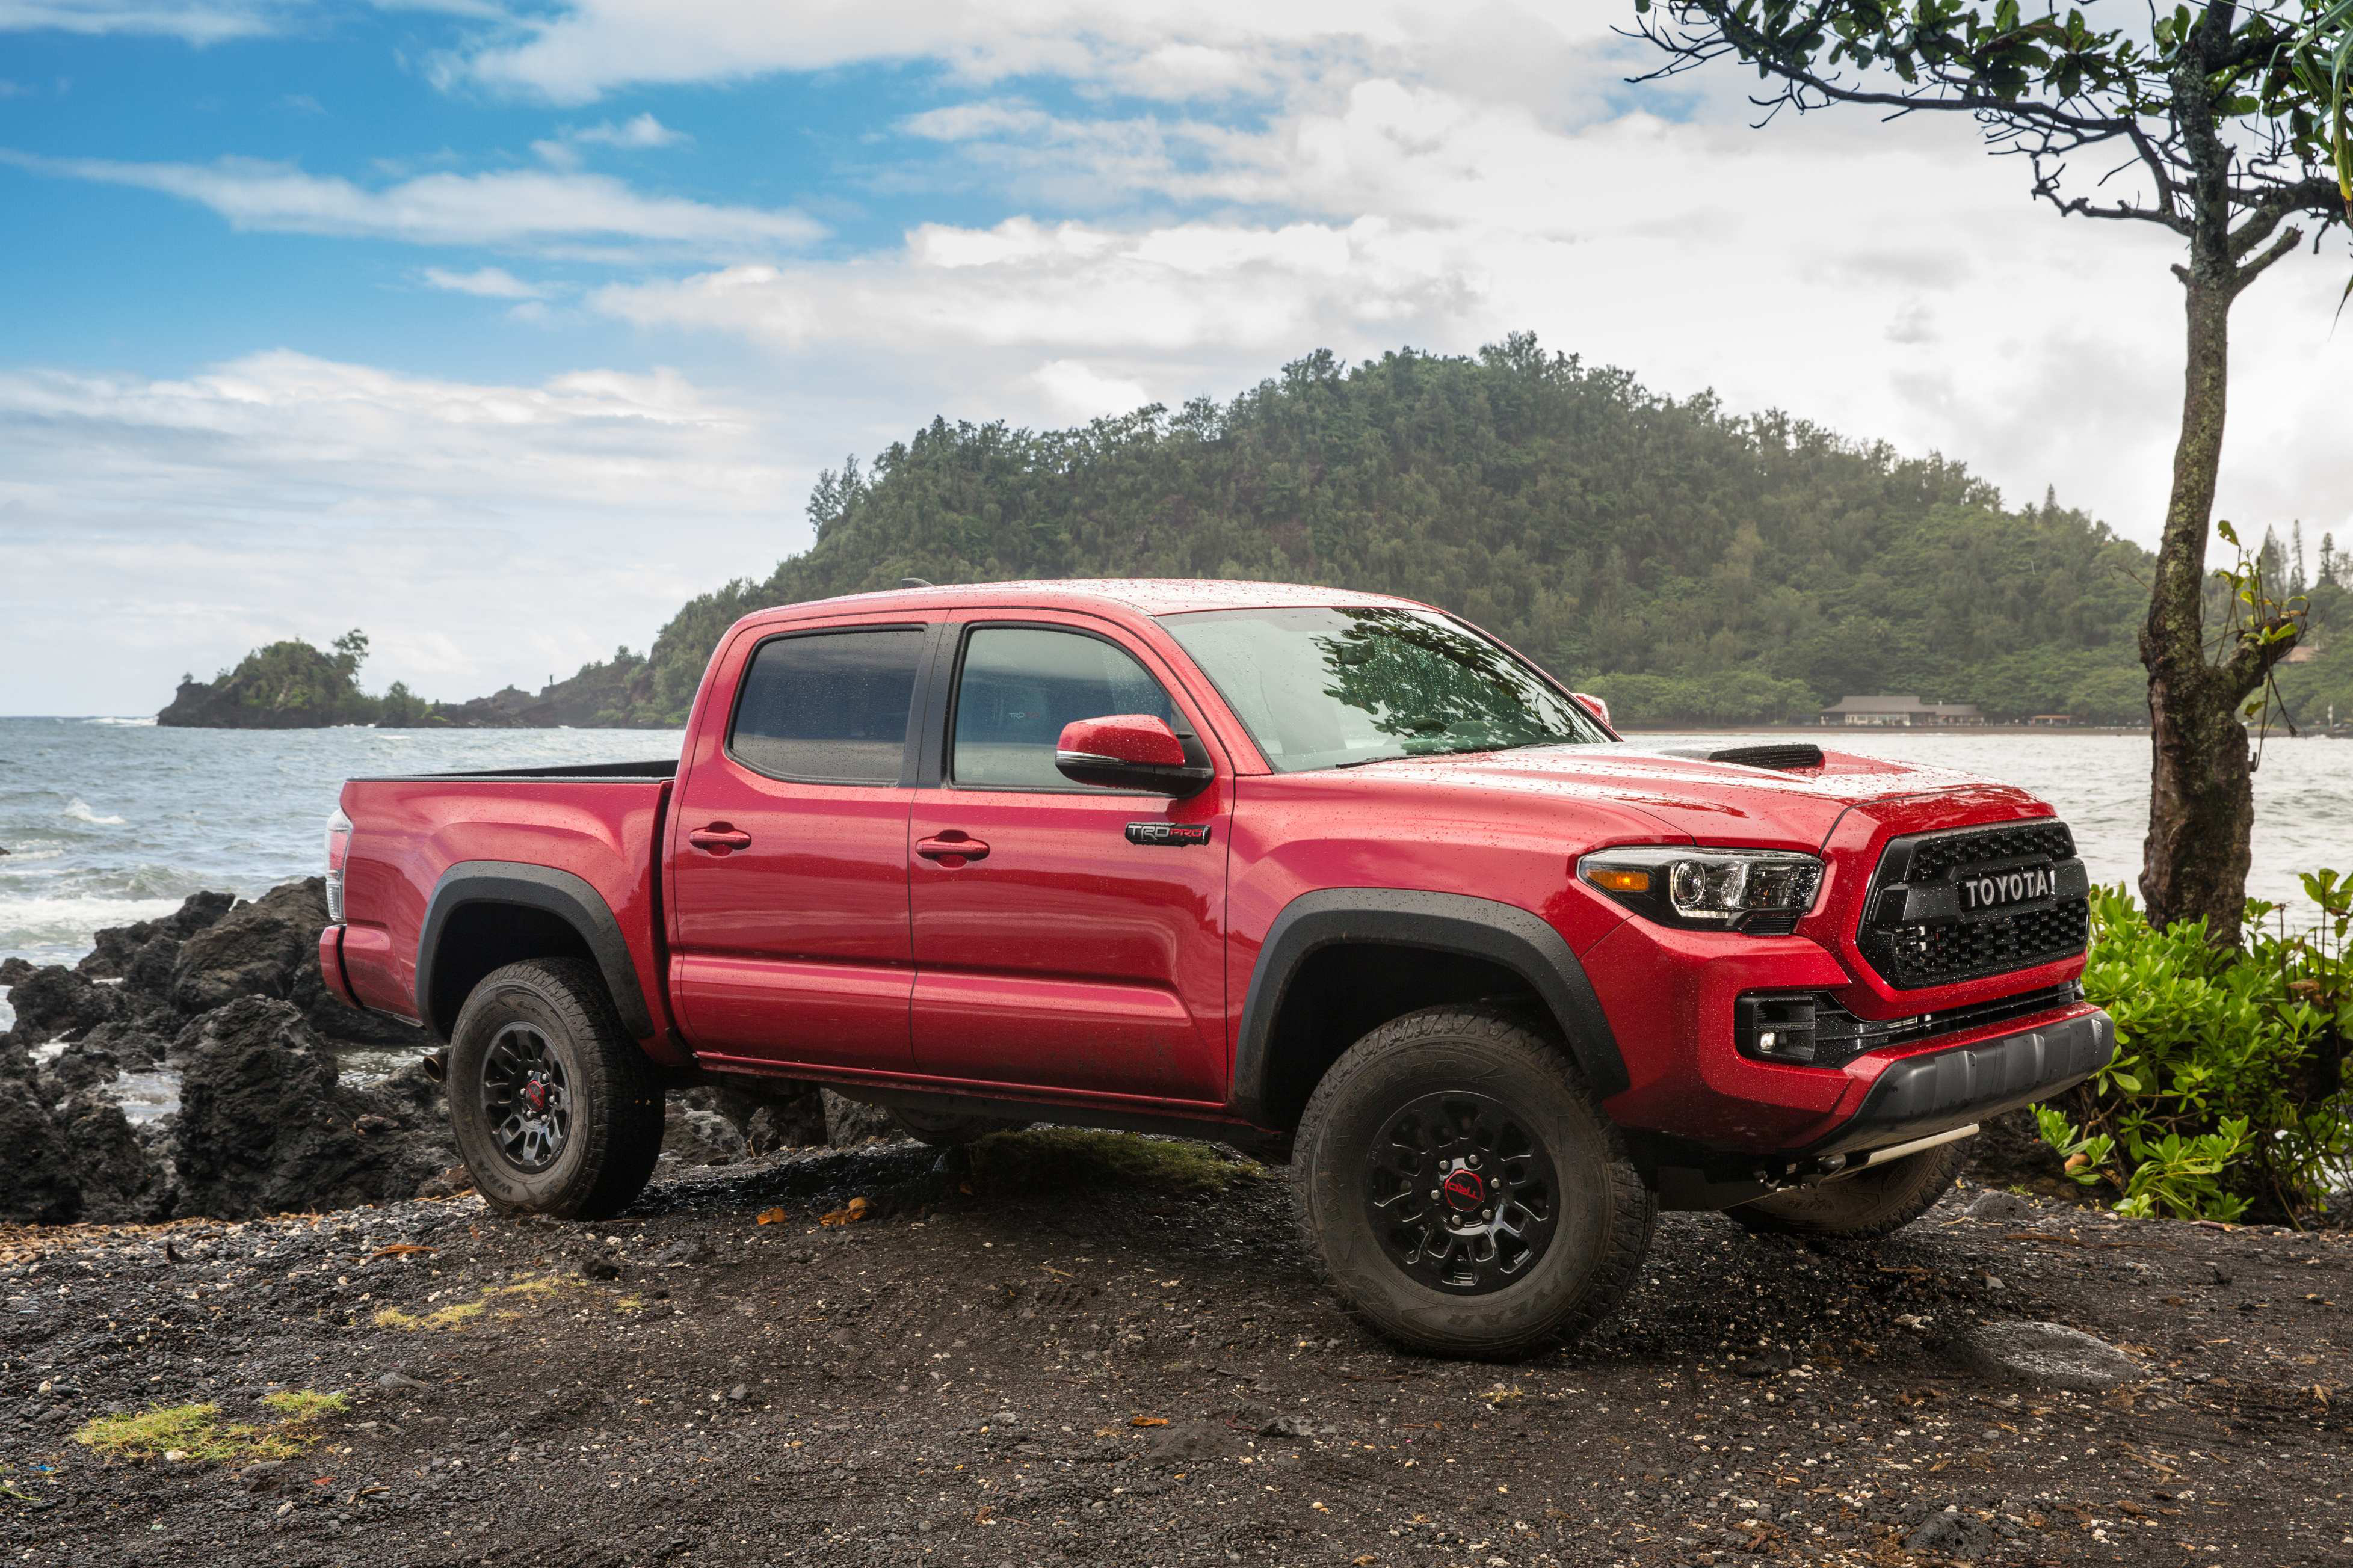 The 2017 Toyota Tacoma Is Part Of A Brake Related Recall Announced Today By